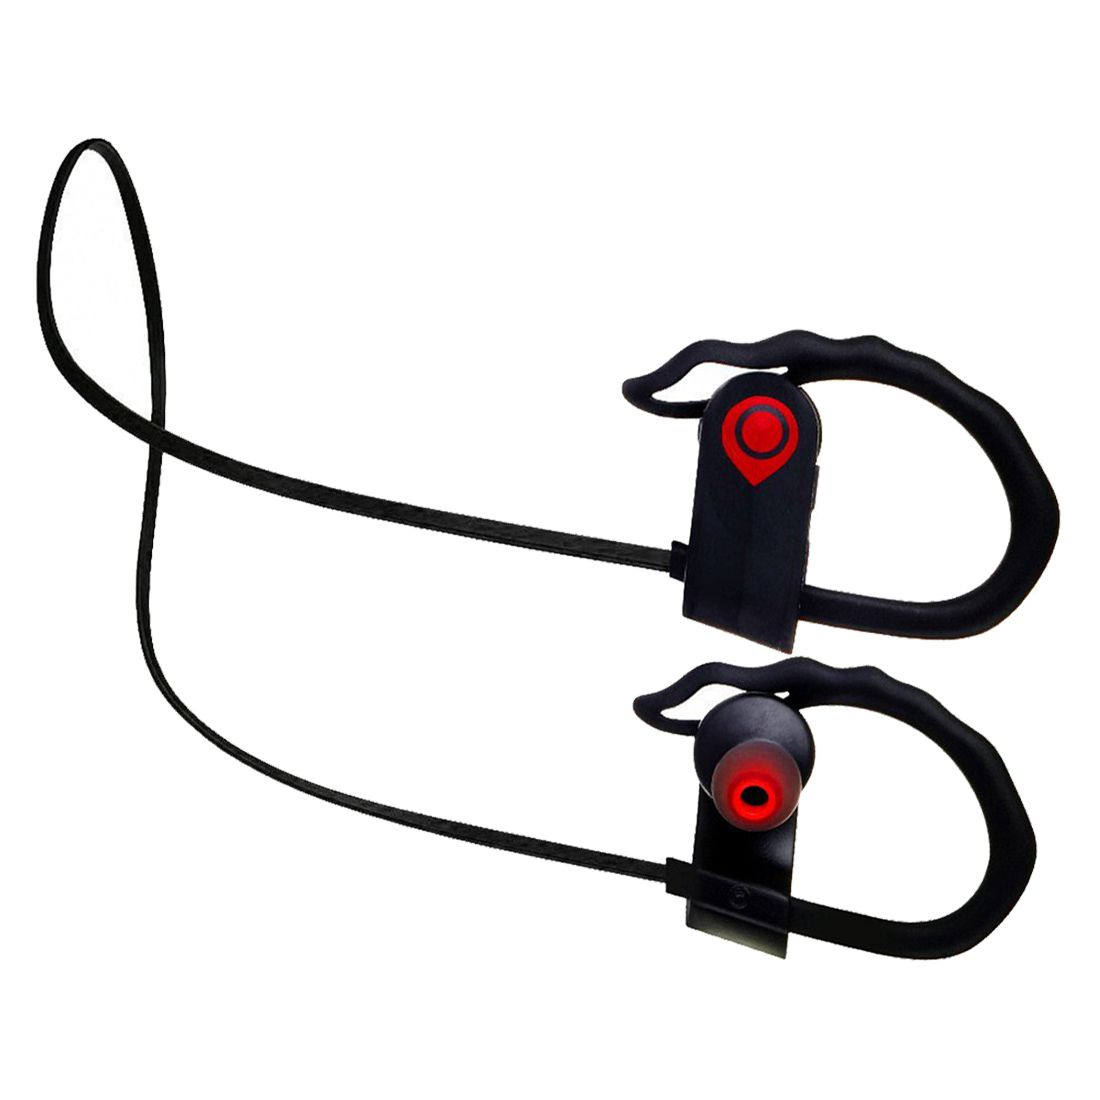 Bluetooth Headphones, Wireless Headphones Sports In-Ear Earbuds with Built-in Mic Wireless Earbuds Stereo Sound Noise Cancelli panasonic rp hxs400m a sound rush plus on ear headphones